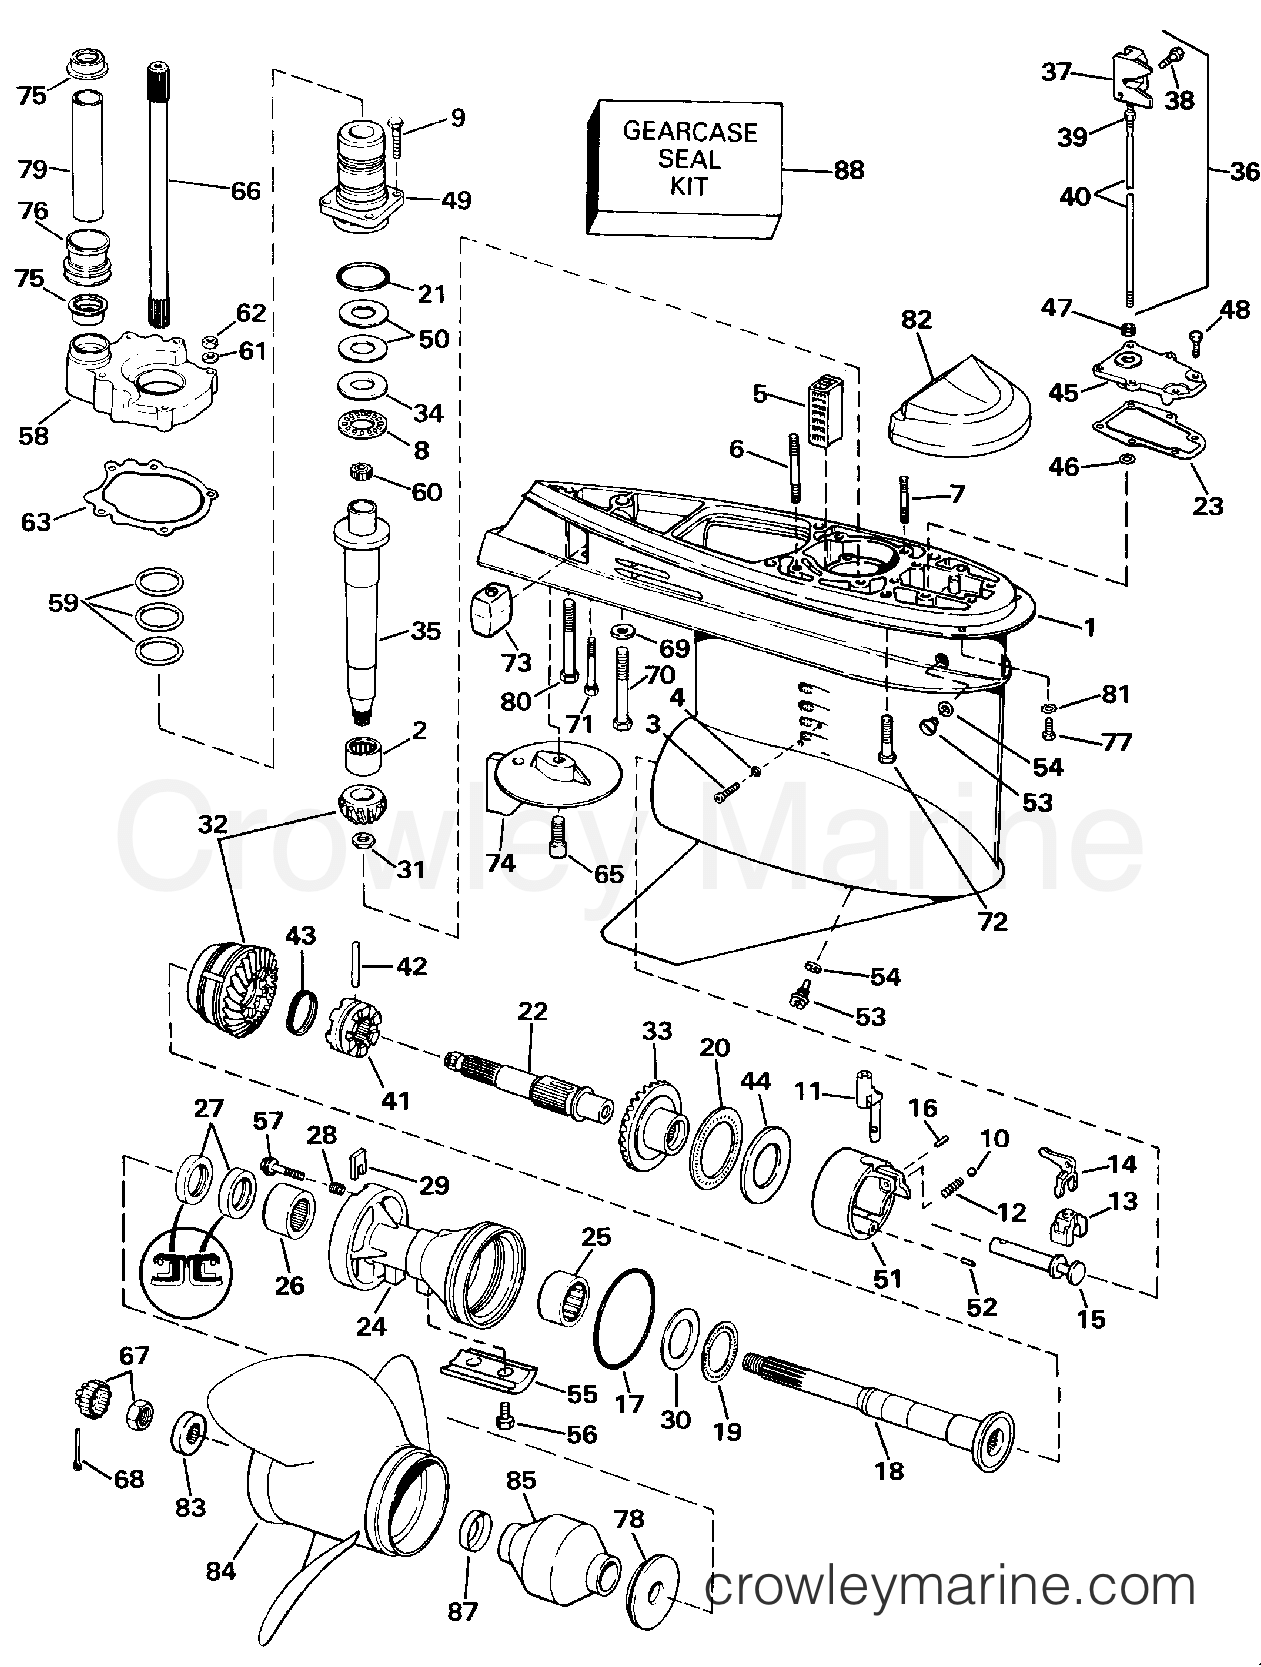 Lower Gearcase Counter L H Rotation